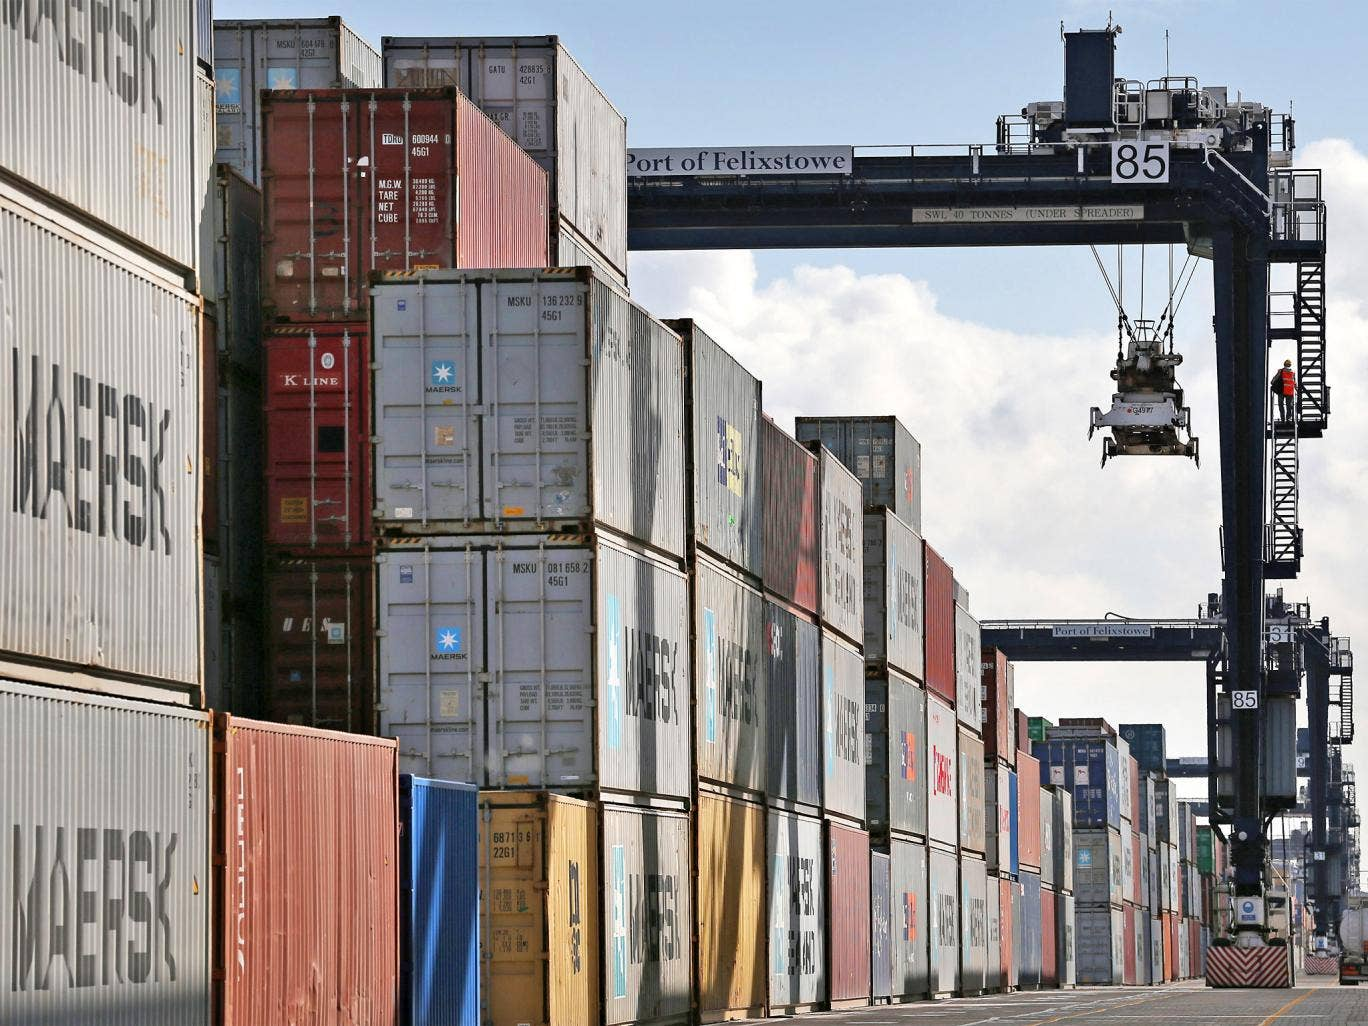 The Port of Felixstowe, in Suffolk, is the UK's busiest container port